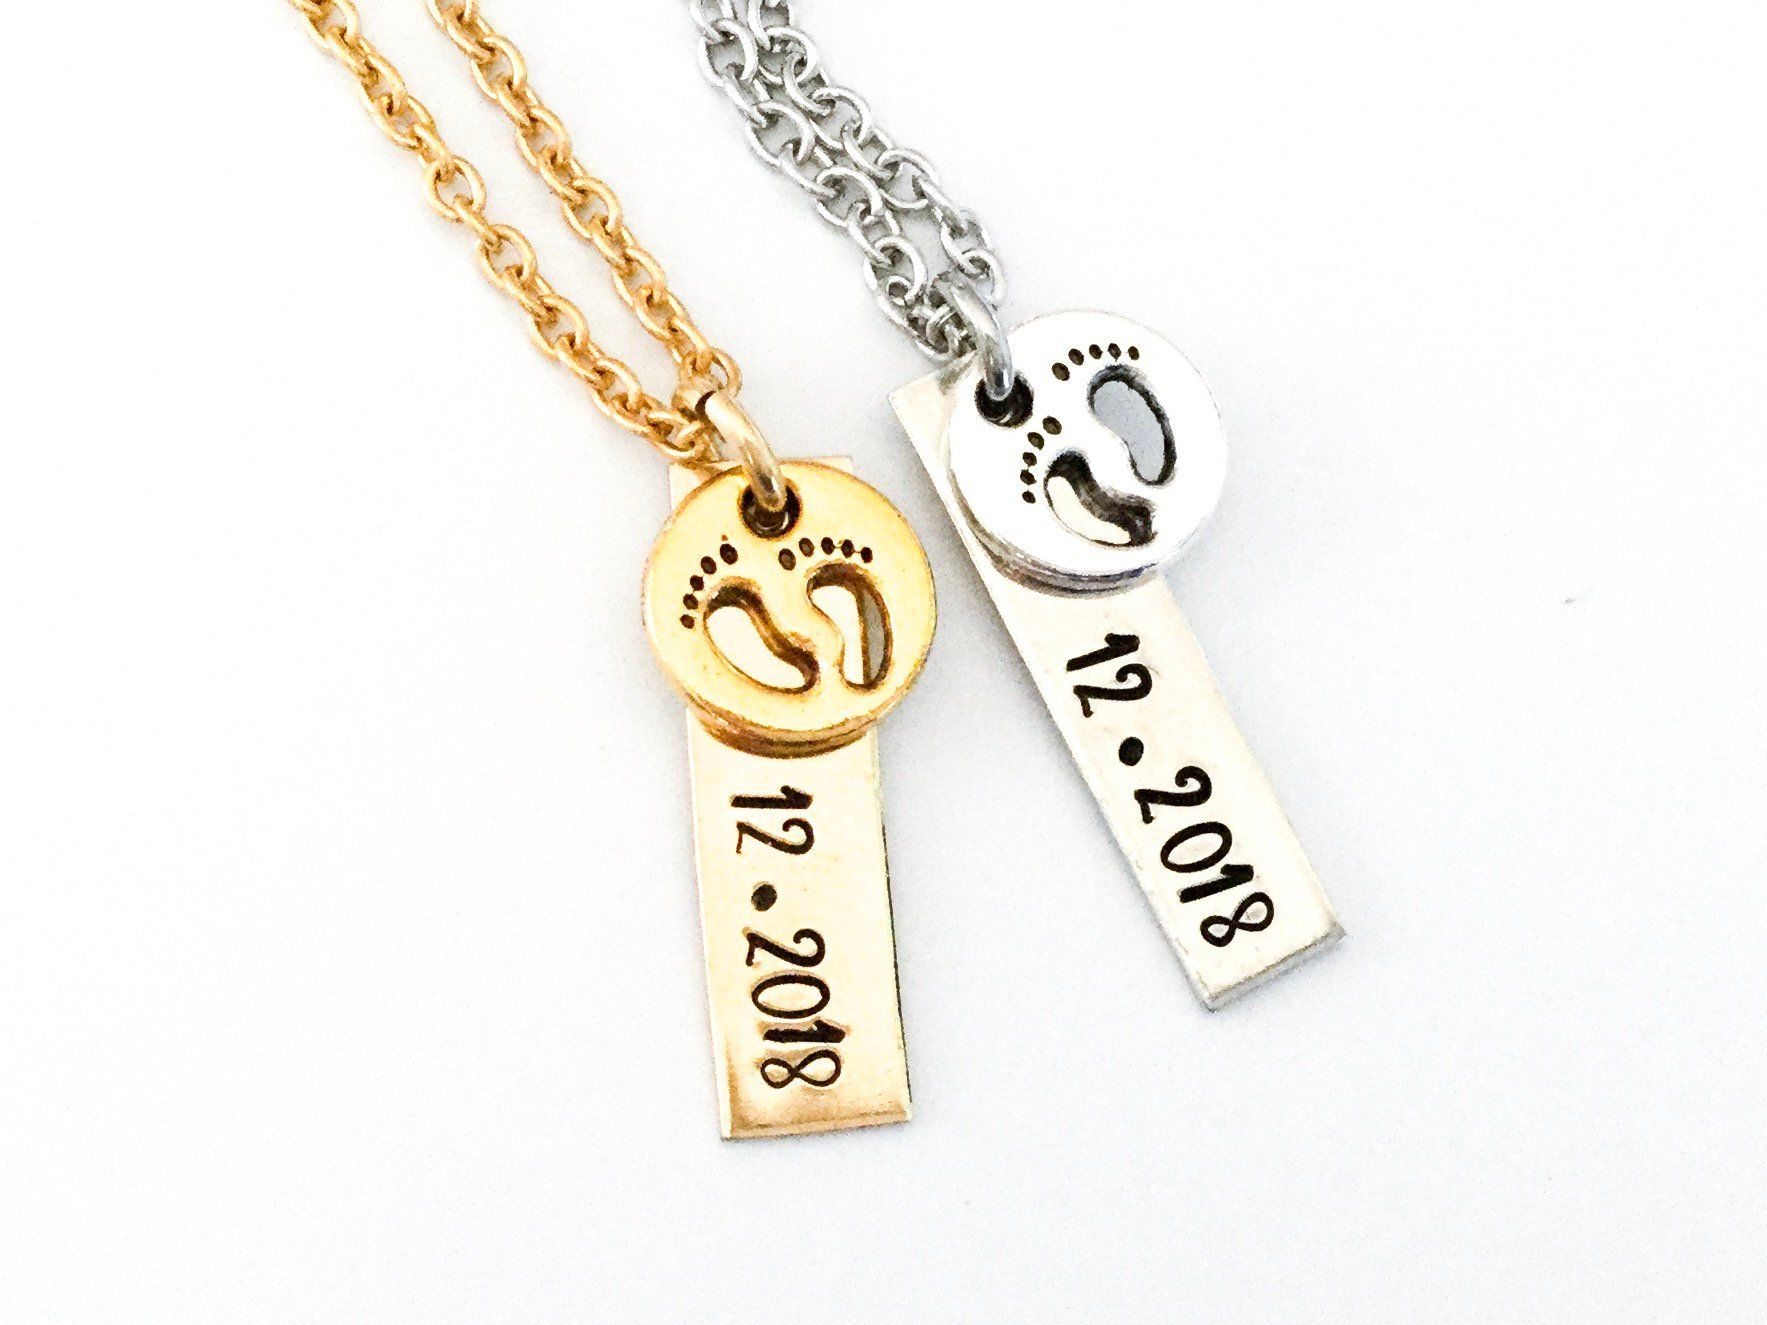 37++ Jewelry gift for pregnant wife ideas in 2021